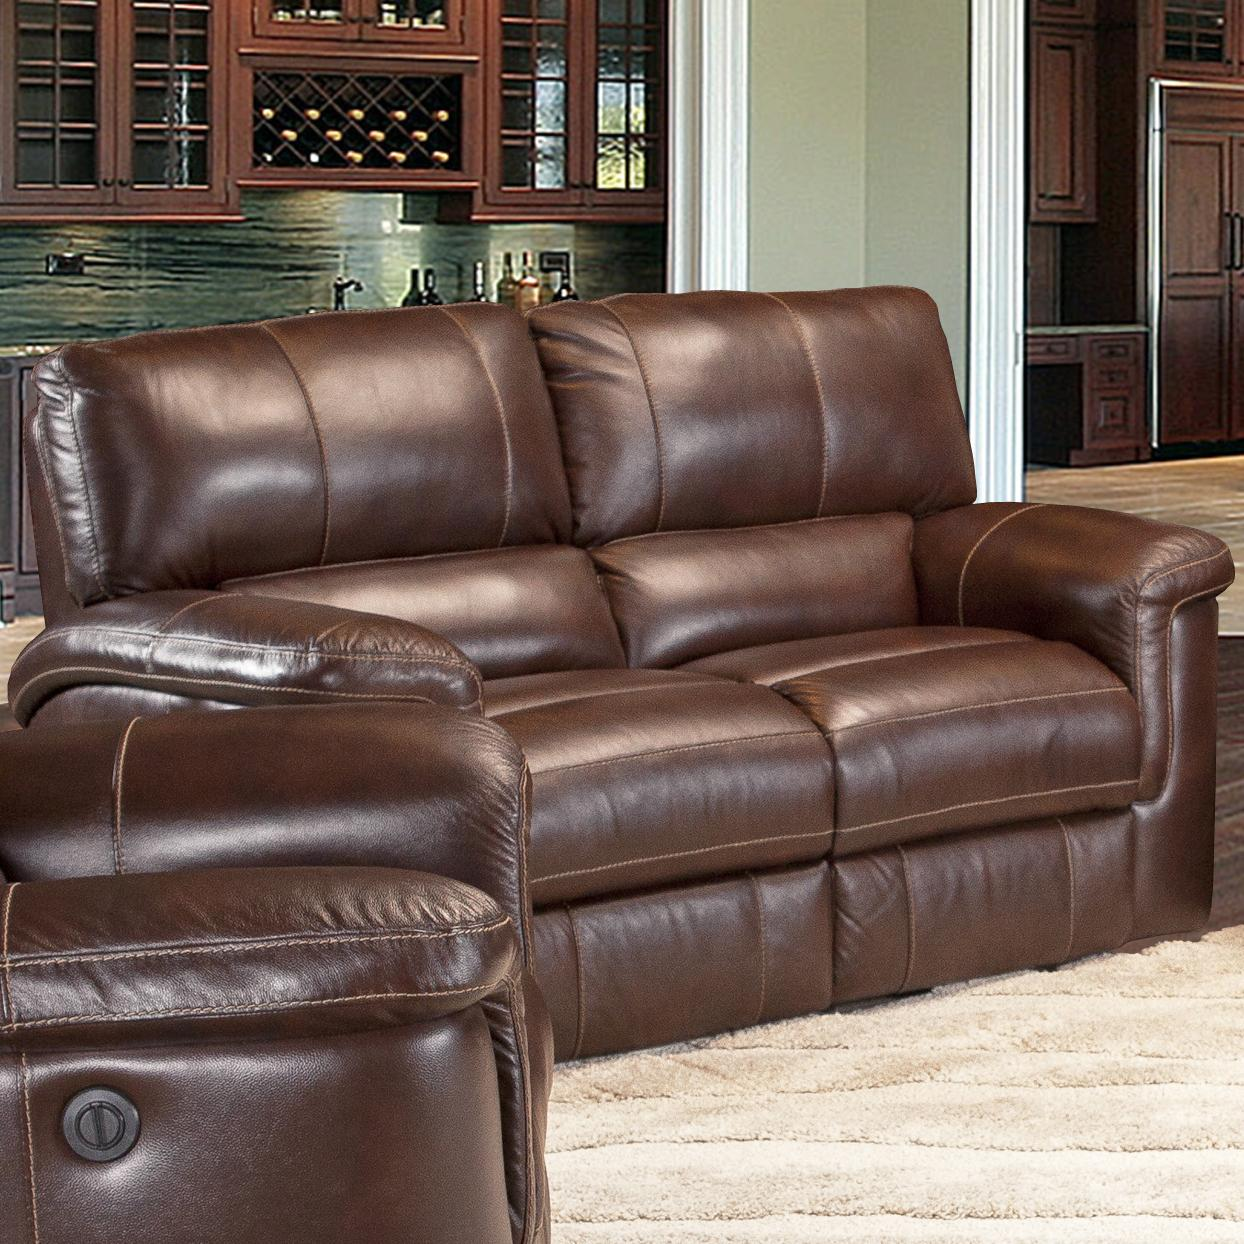 Parker Living Hitchcock Casual Duel Reclining Power Loveseat - Item Number: MHIT-822P-CI